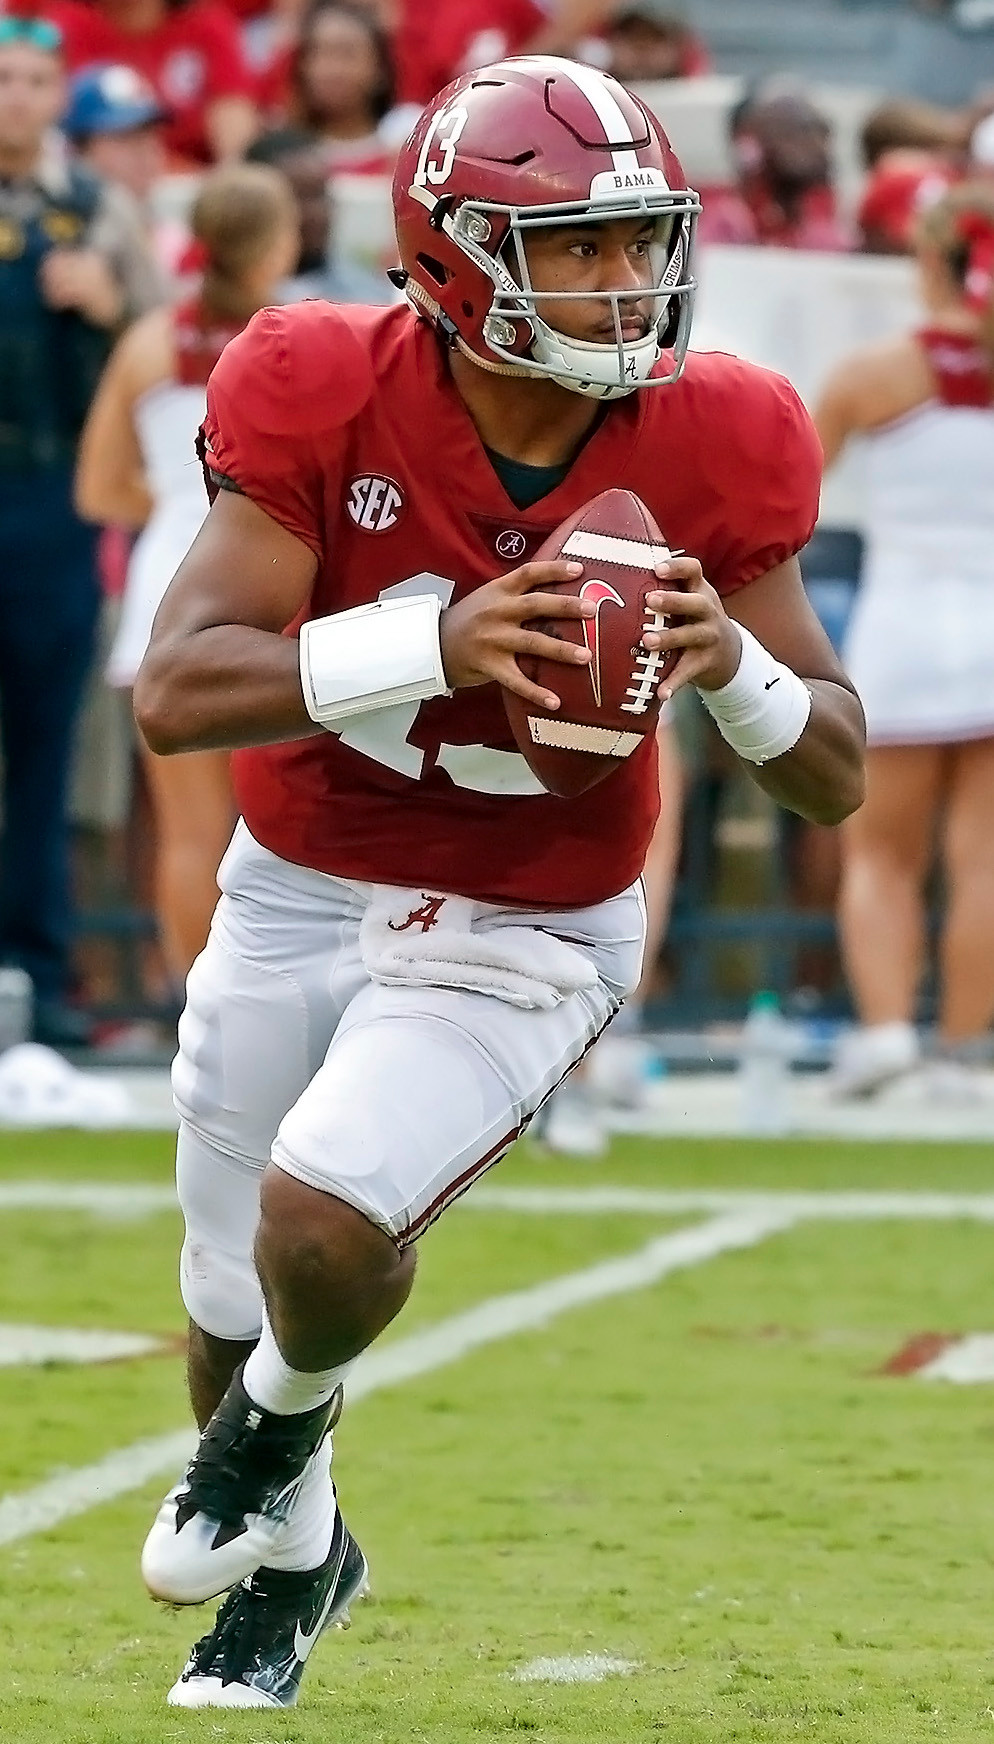 Alabama quarterback Tua Tagovailoa (13) threw for 387 yards and five touchdowns in the Tide's win over Texas A&M on Saturday.